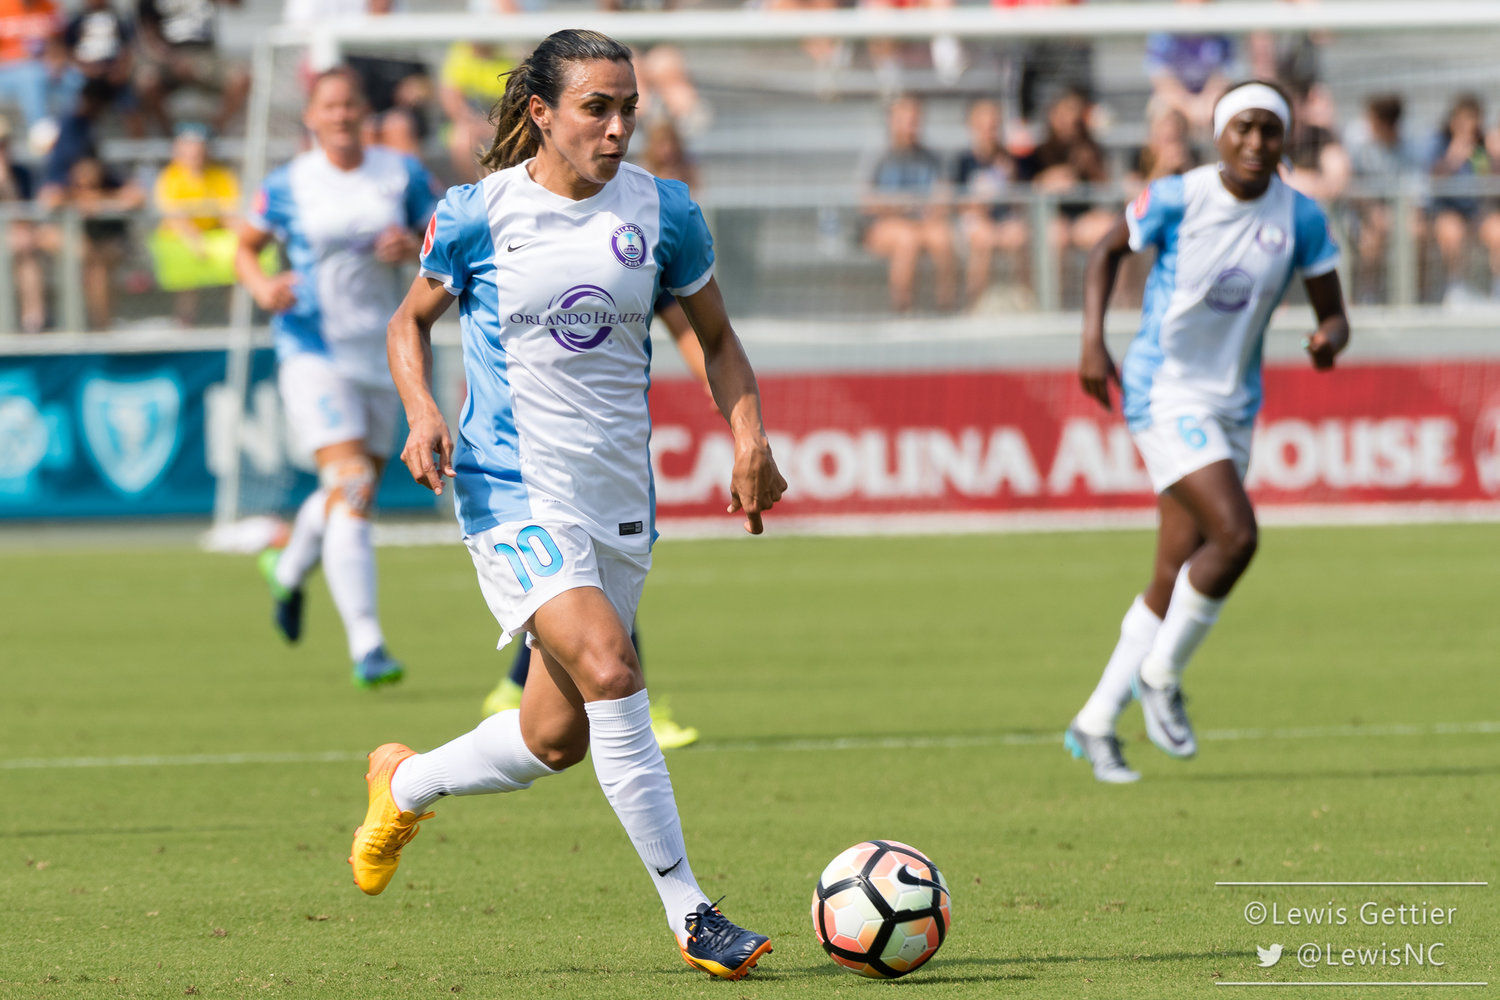 Marta scored a second-half equalizer to help the Orlando Pride earn a point on the road in Seattle.